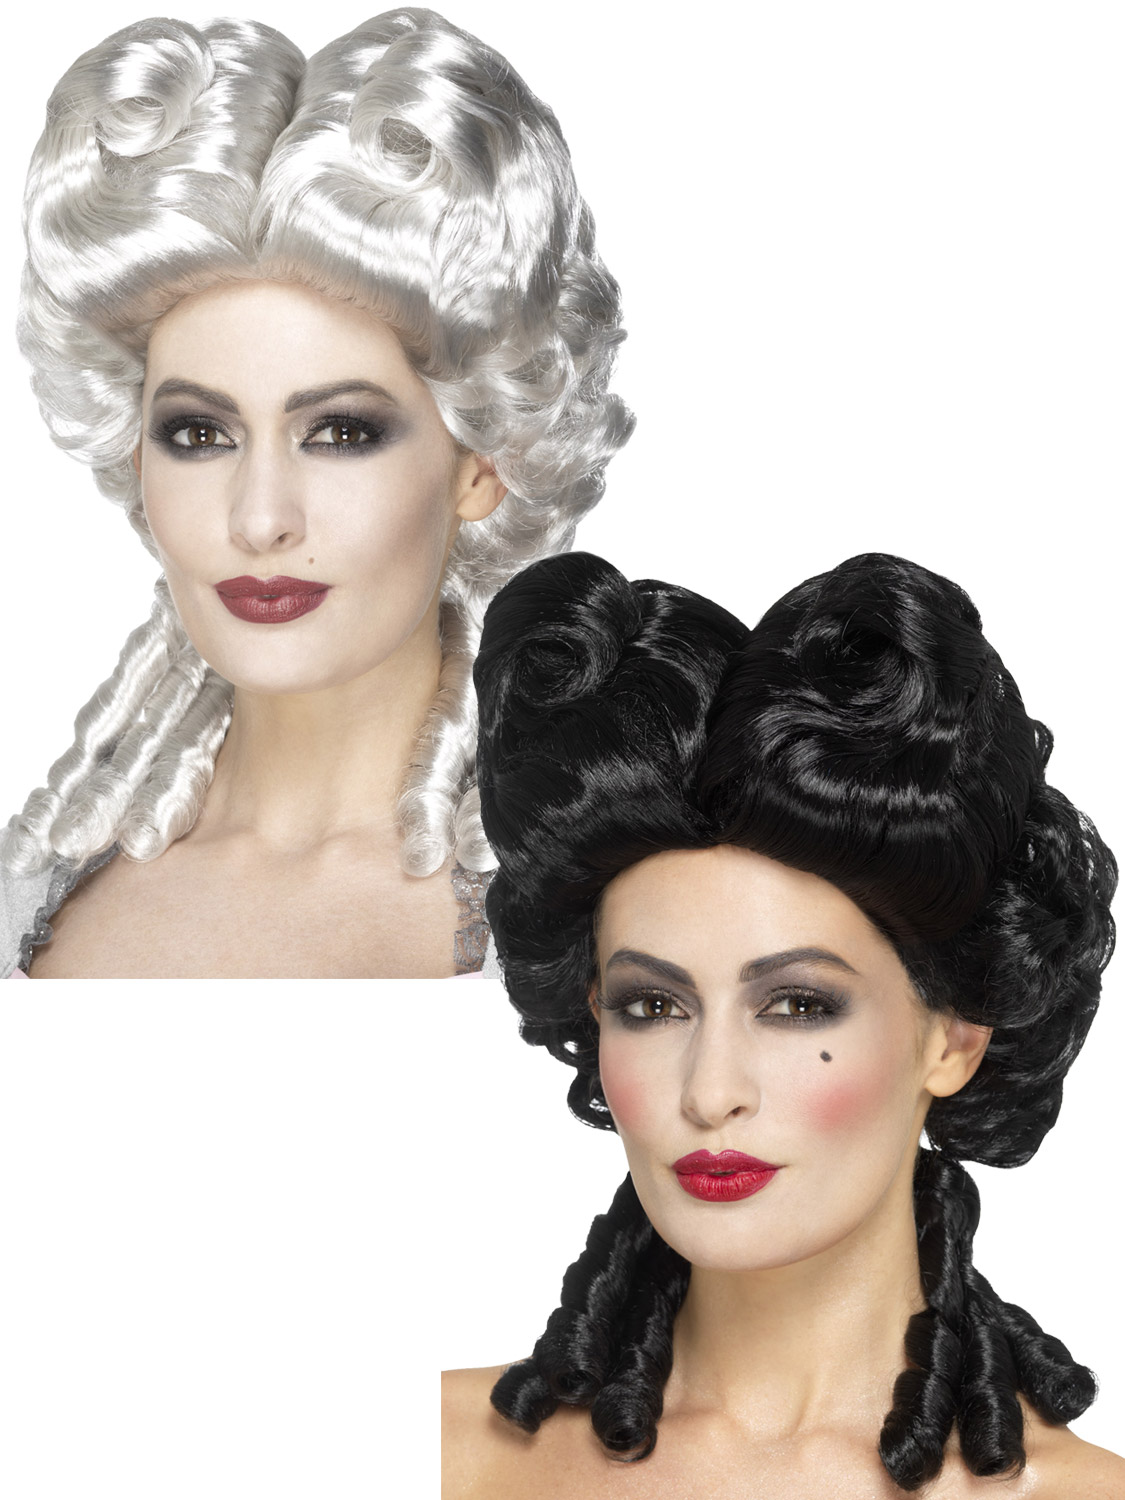 31b6a38fb3235 Details about Ladies Gothic Wig Antoinette Baroque Halloween Fancy Dress  Costume Accessory